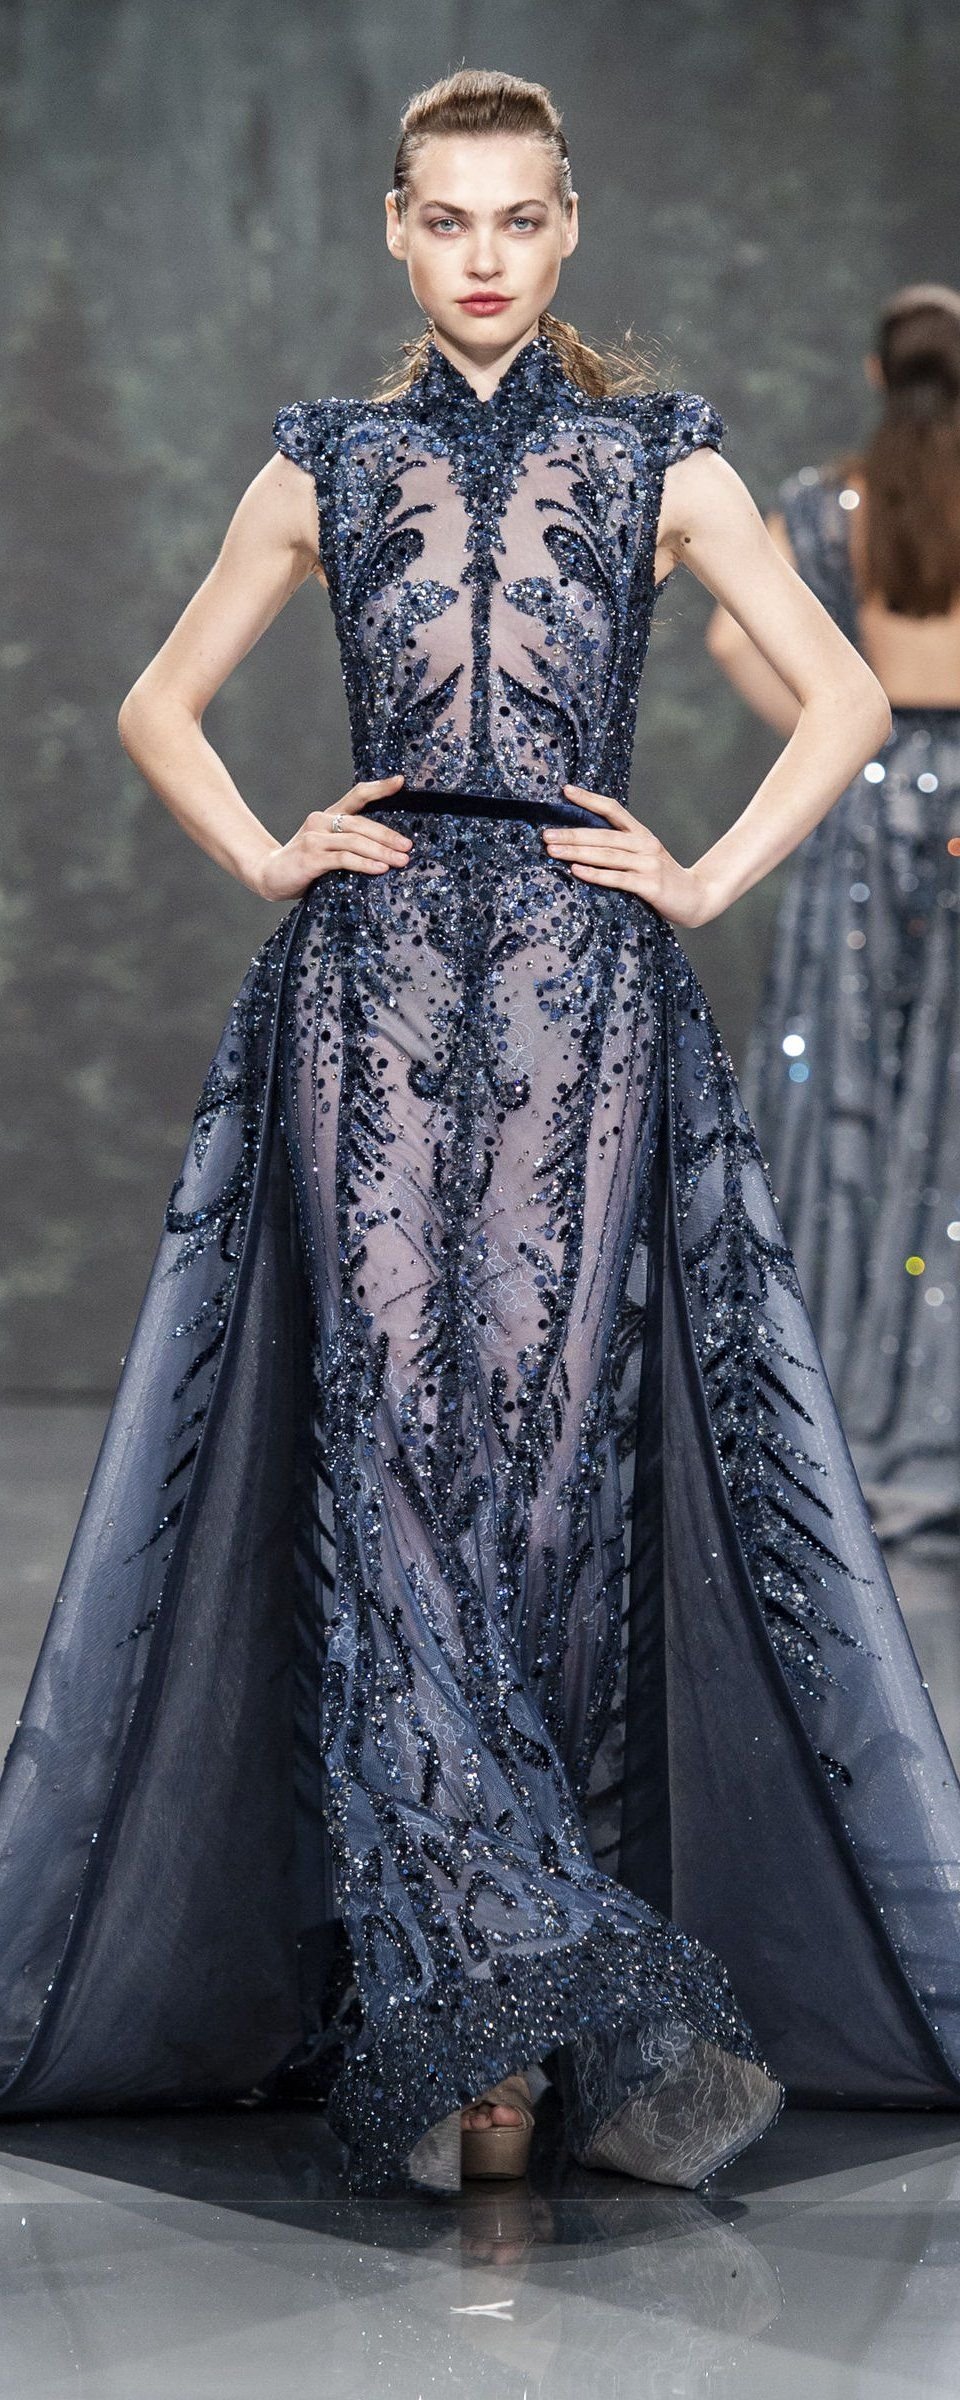 Ziad Nakad Fall Winter 2018 2019 Couture In 2019 Pretty Things